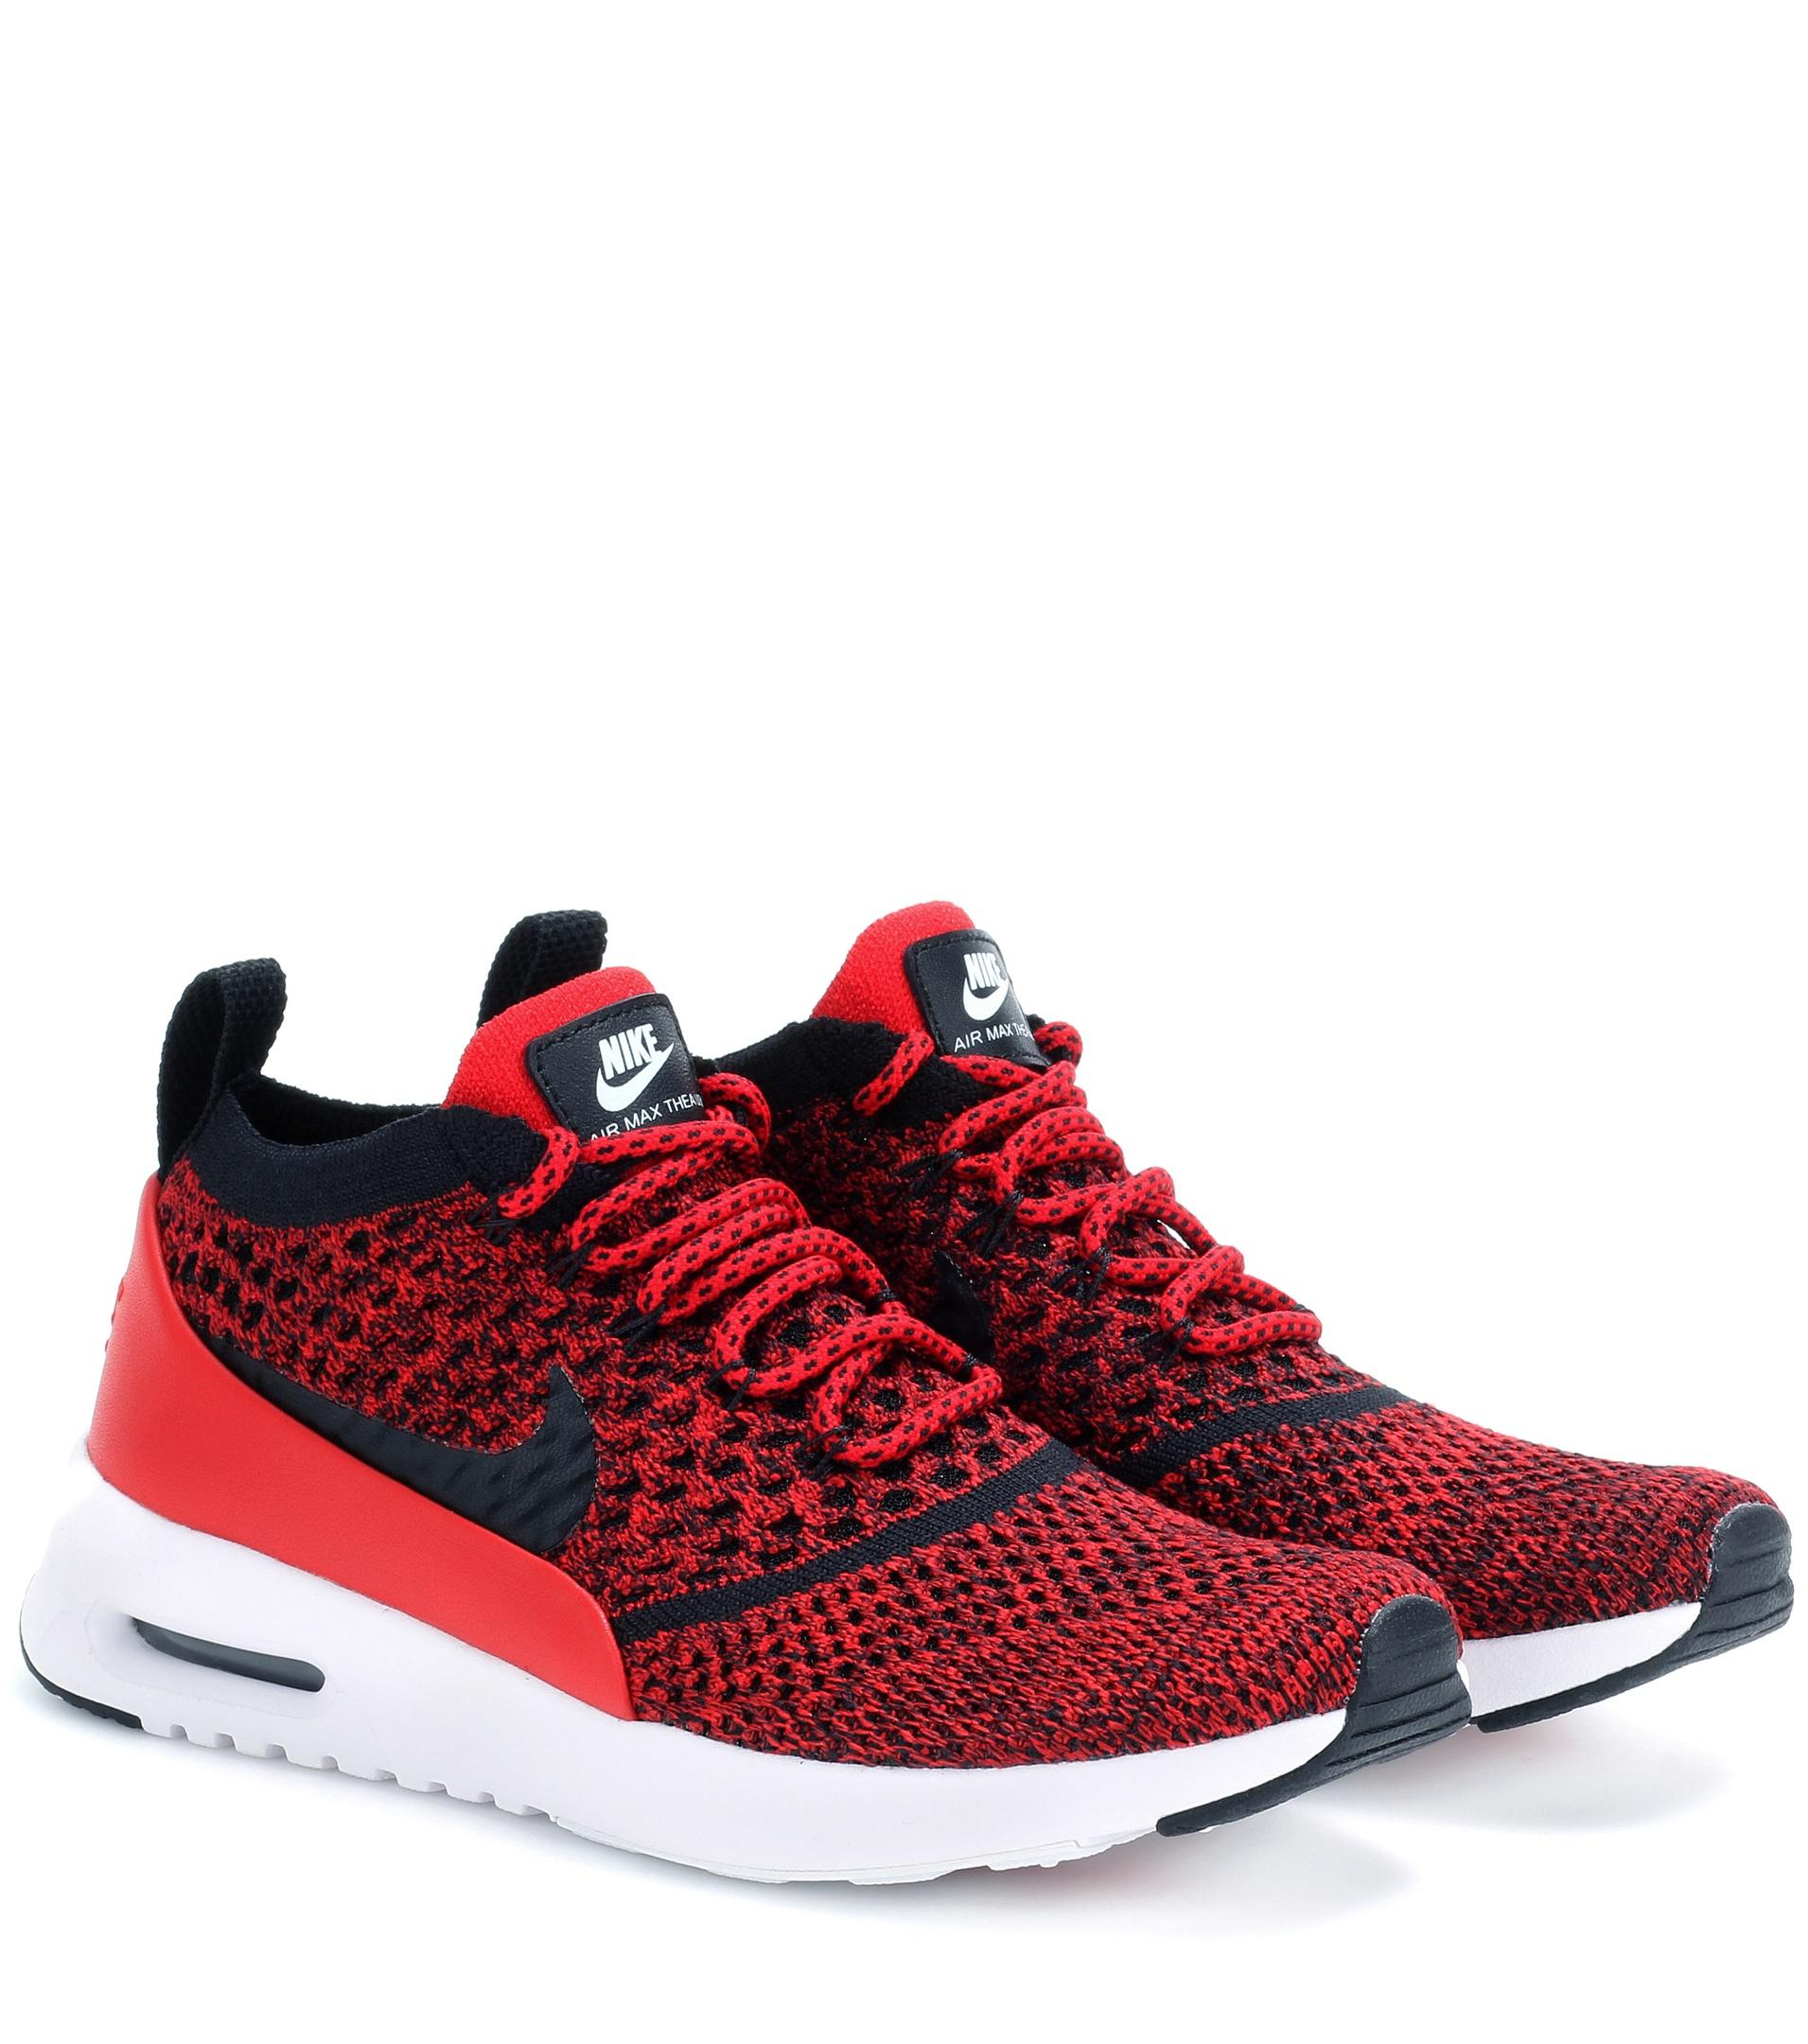 nike air max thea ultra flyknit sneakers in red lyst. Black Bedroom Furniture Sets. Home Design Ideas